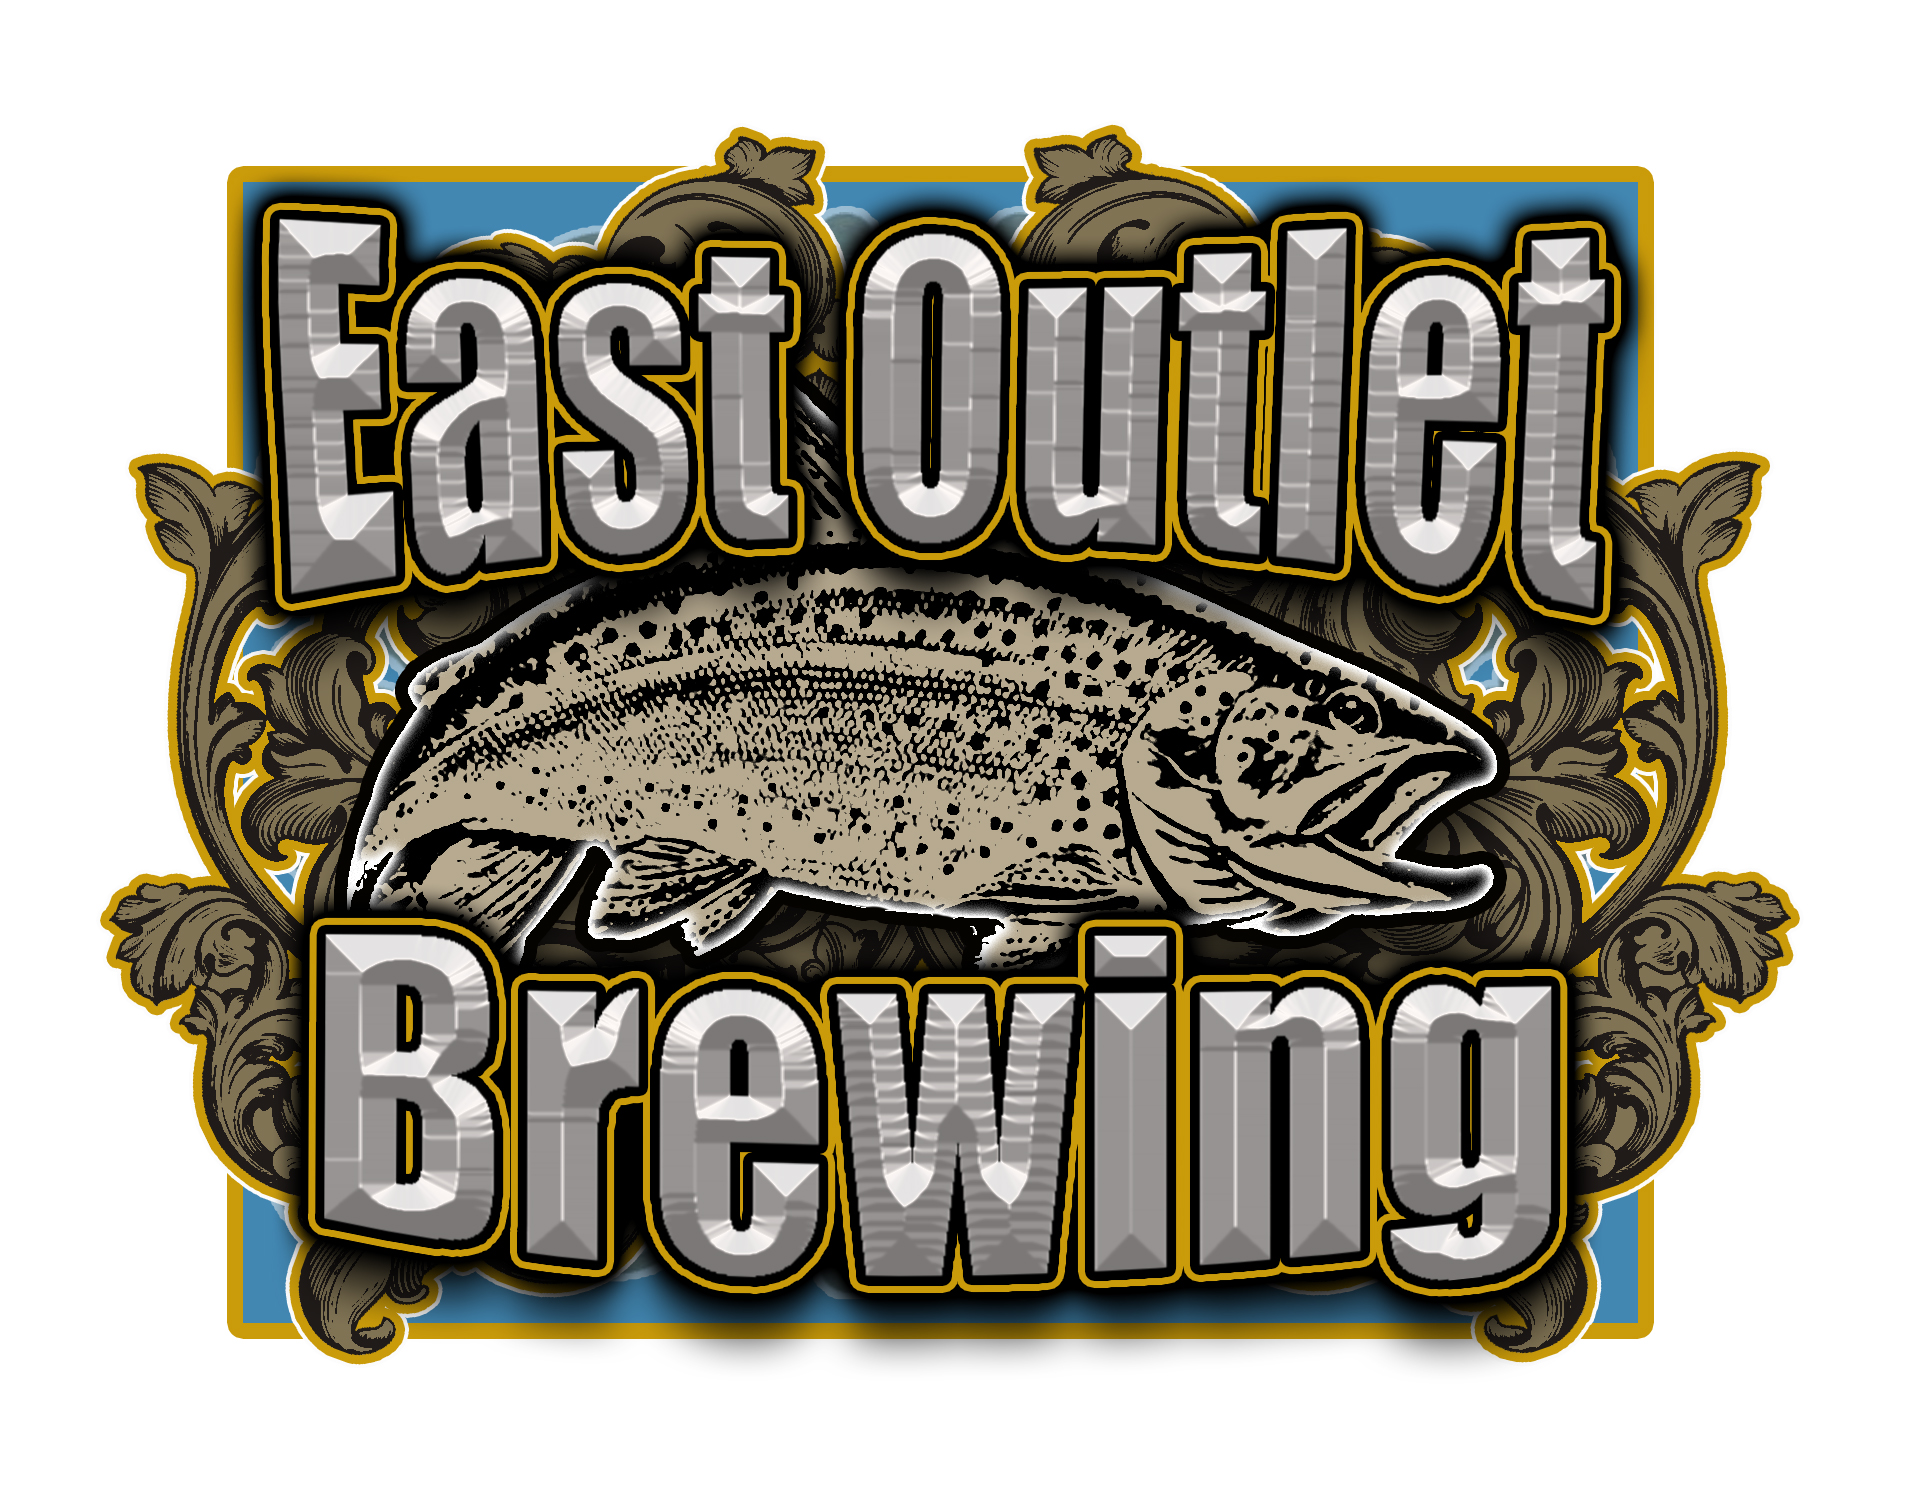 East Outlet Brewing